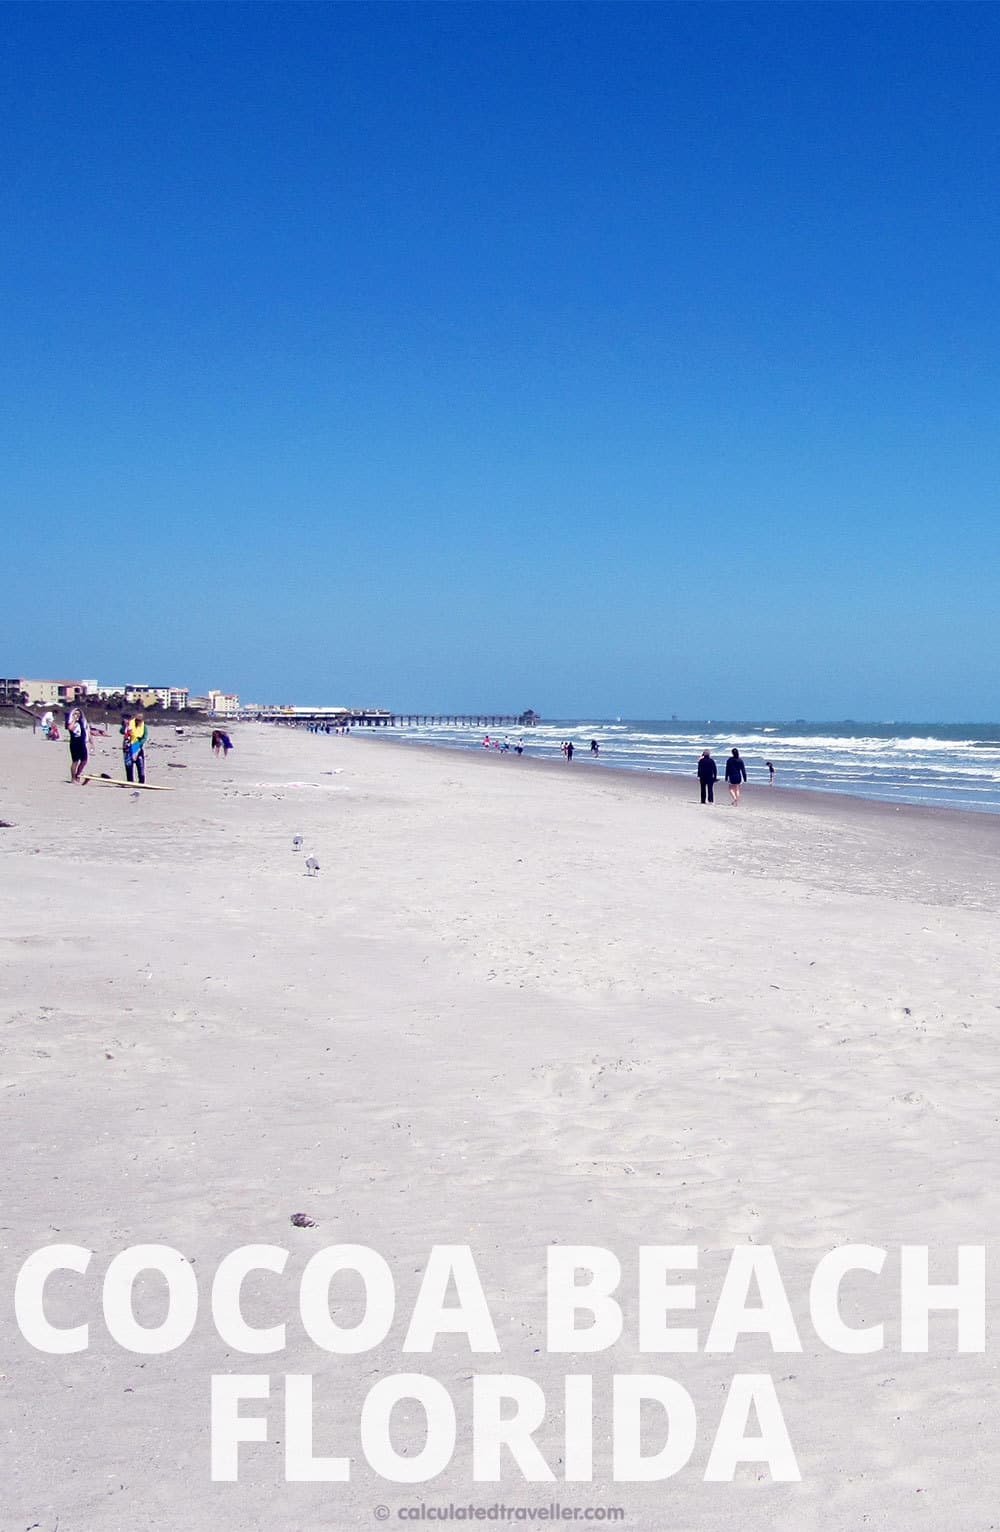 Cocoa Beach, Florida: Raising the Bar - An interview with the Mayor of Cocoa Beach by Calculated Traveller | #Cocoa #beach #Florida #travel